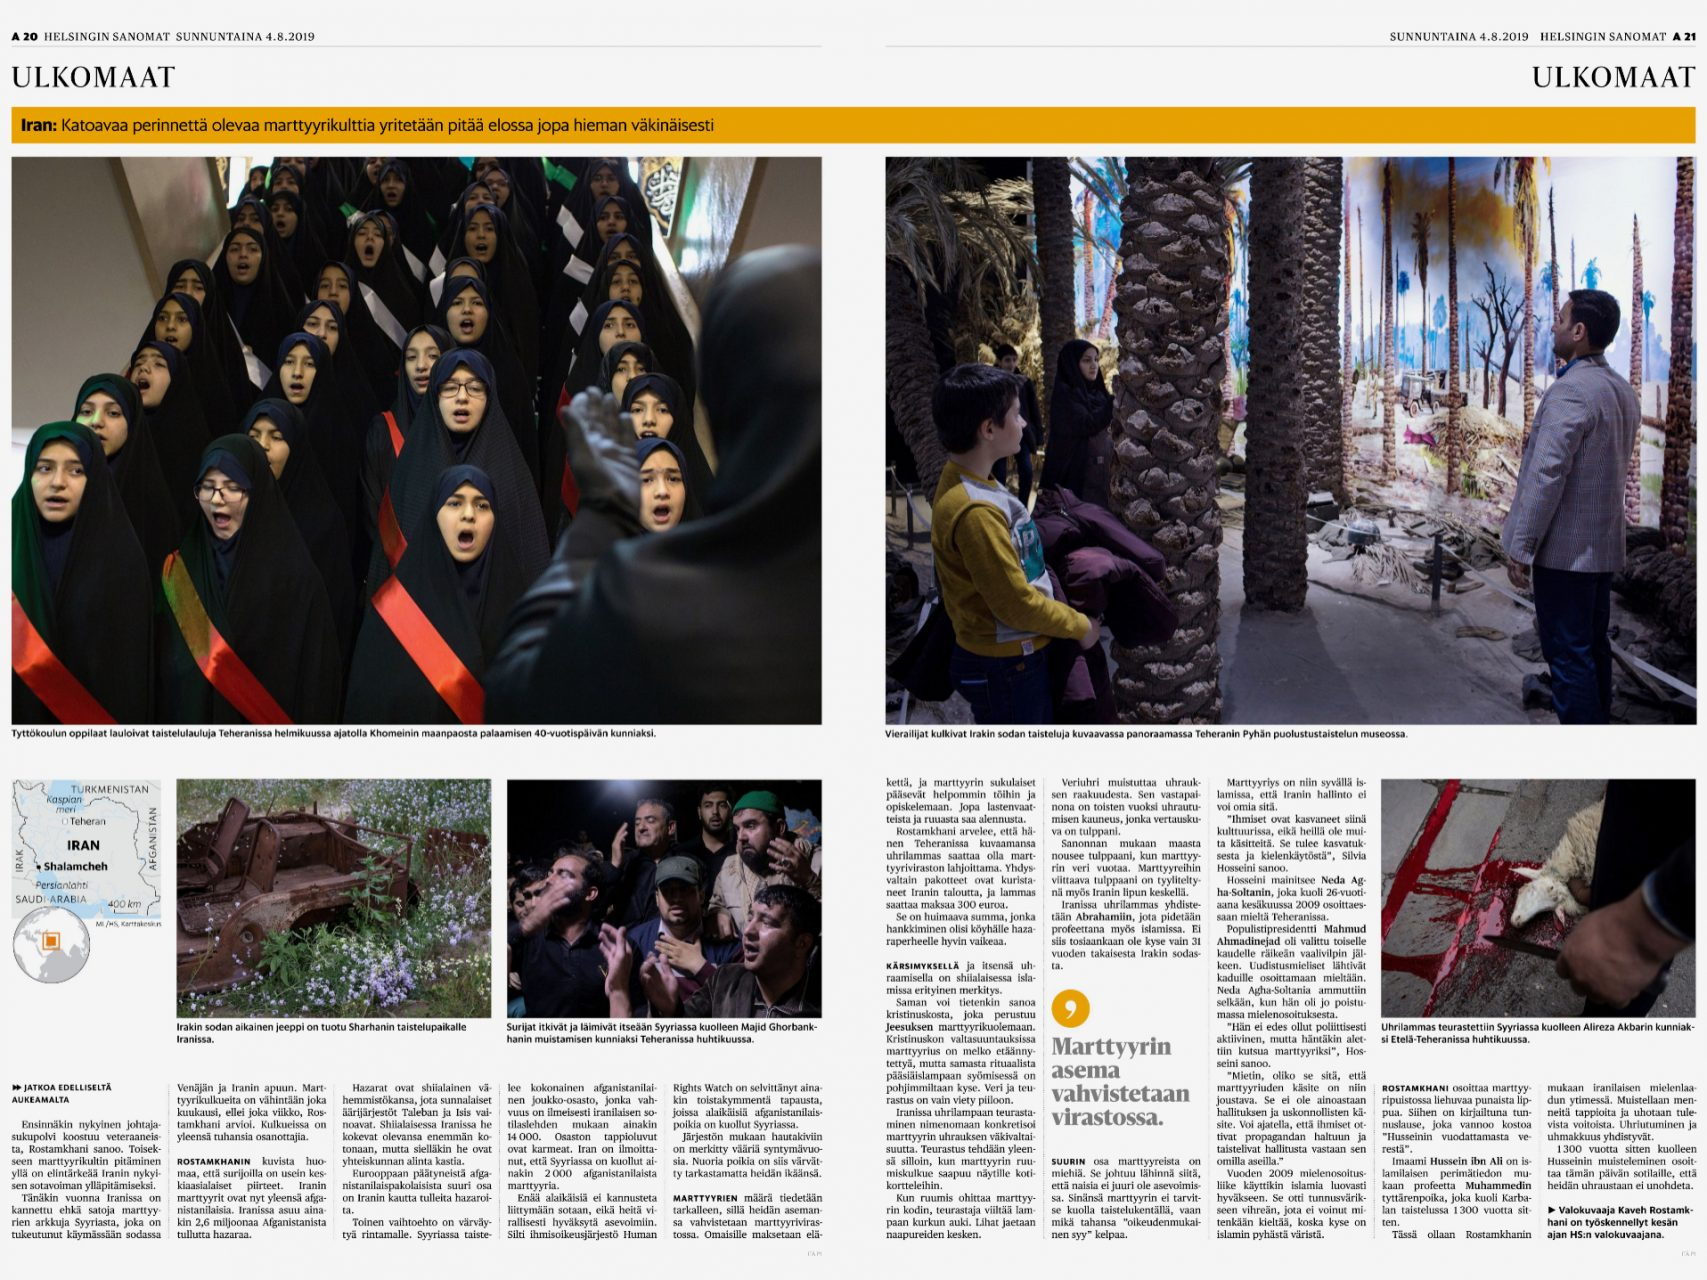 Helsingin Sanomat, Personal Project on Martyrdom in Iran, August 4th 2019